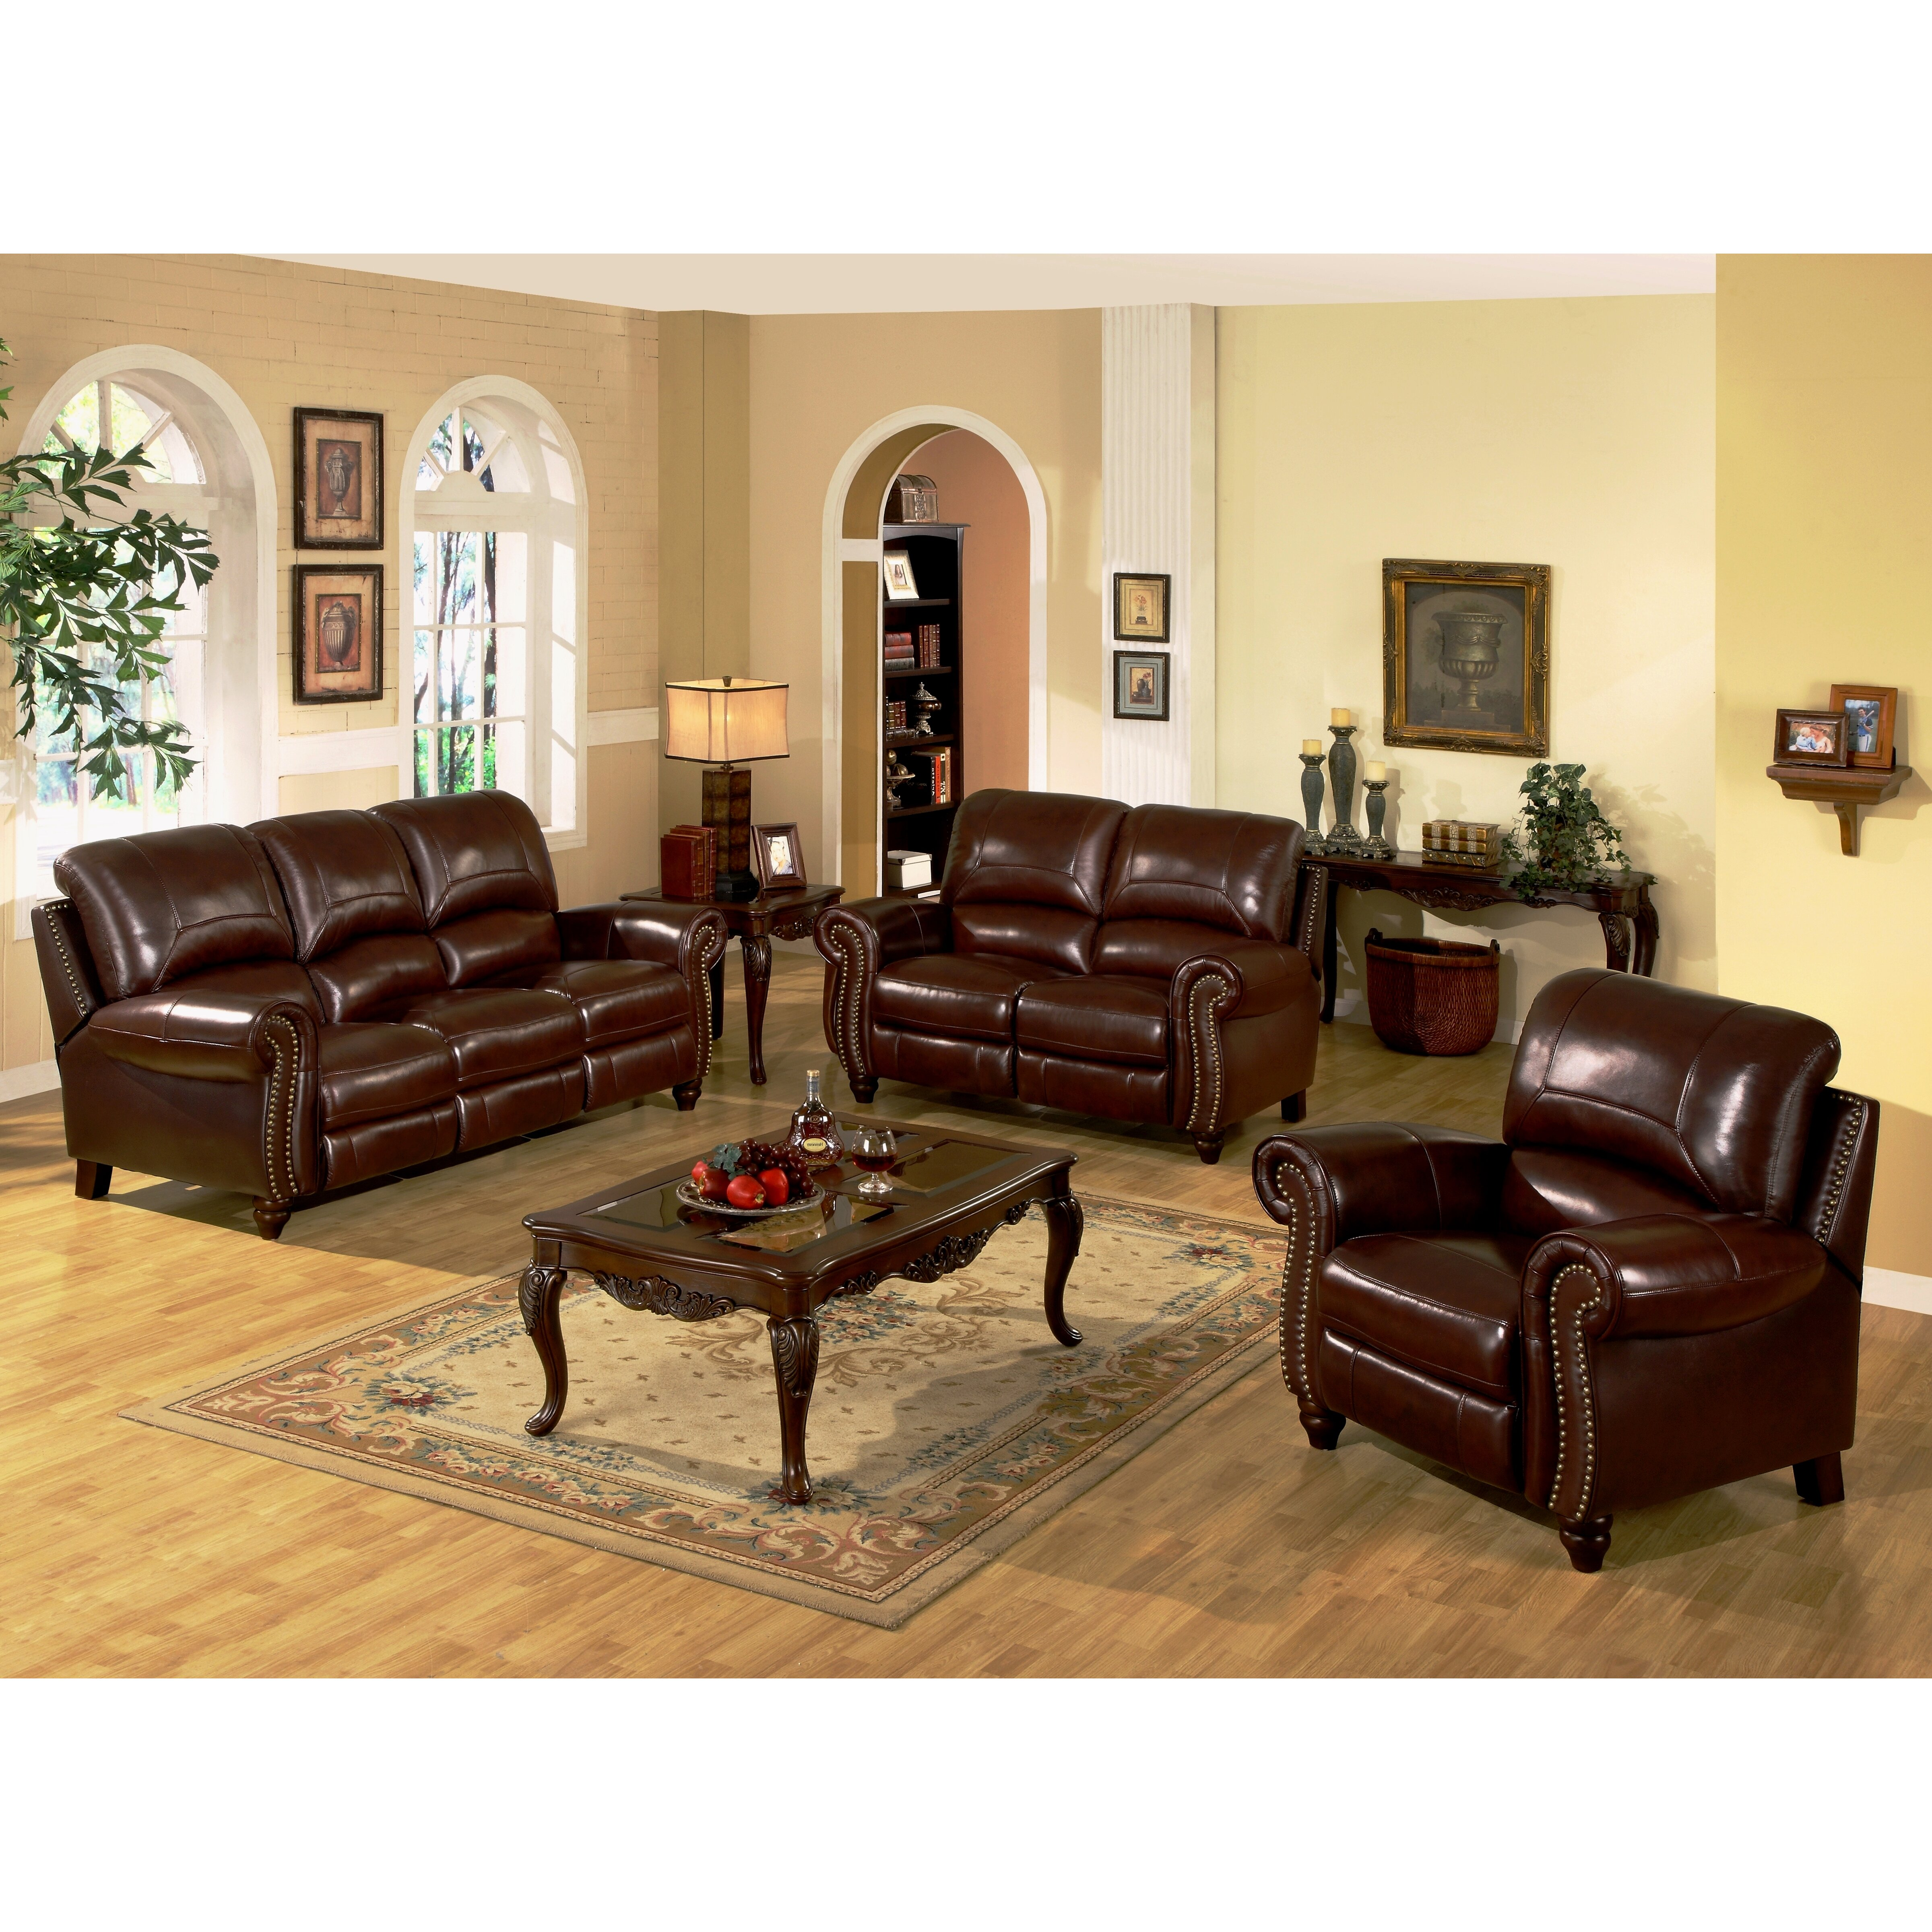 Leather Sectional Sofas Charlotte Nc: Abbyson Living Charlotte Leather Reclining Sofa & Reviews